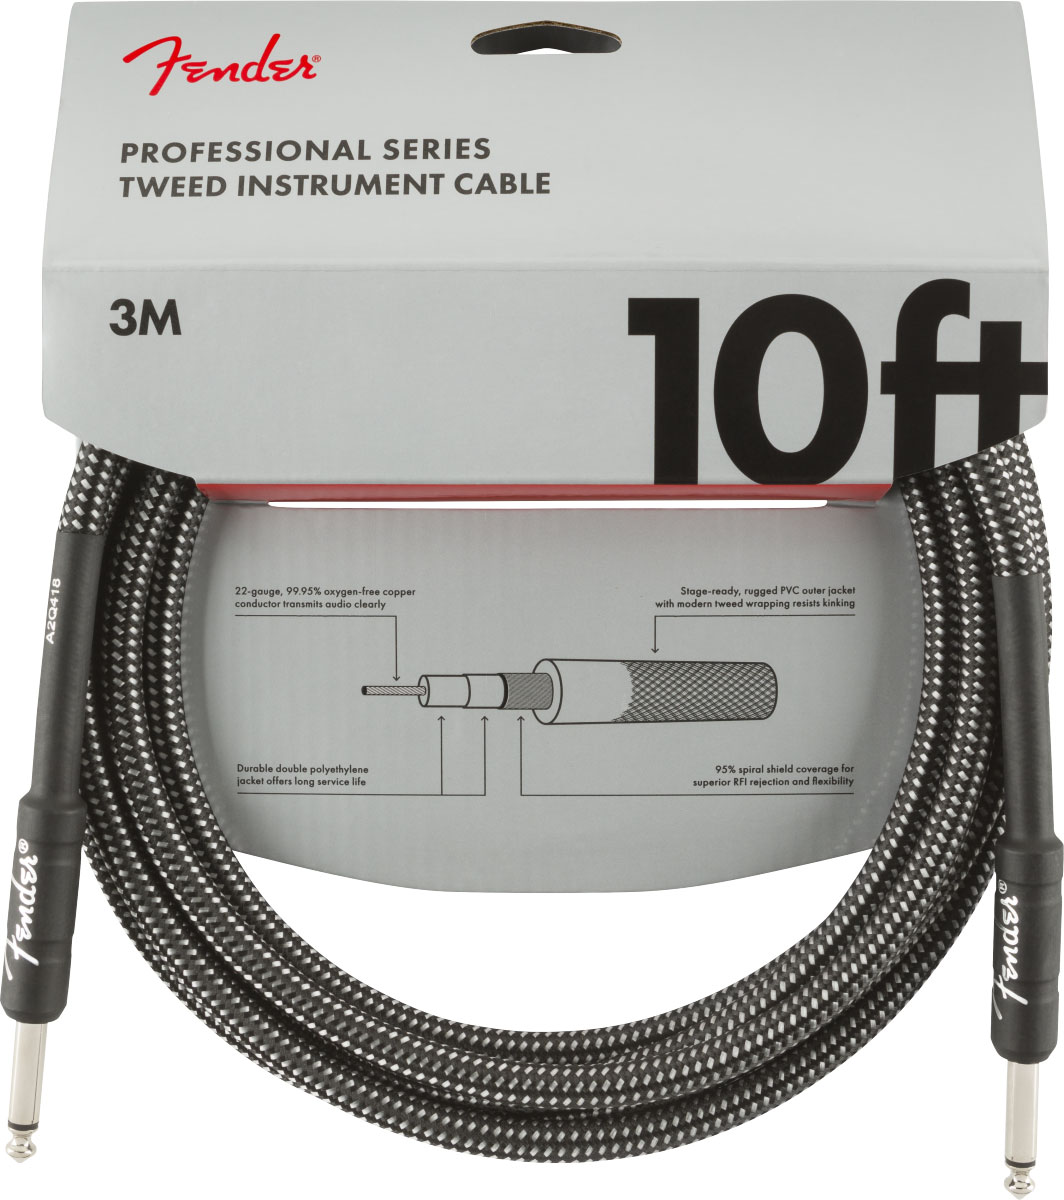 PROFESSIONAL SERIES INSTRUMENT CABLES 10' GRAY TWEED